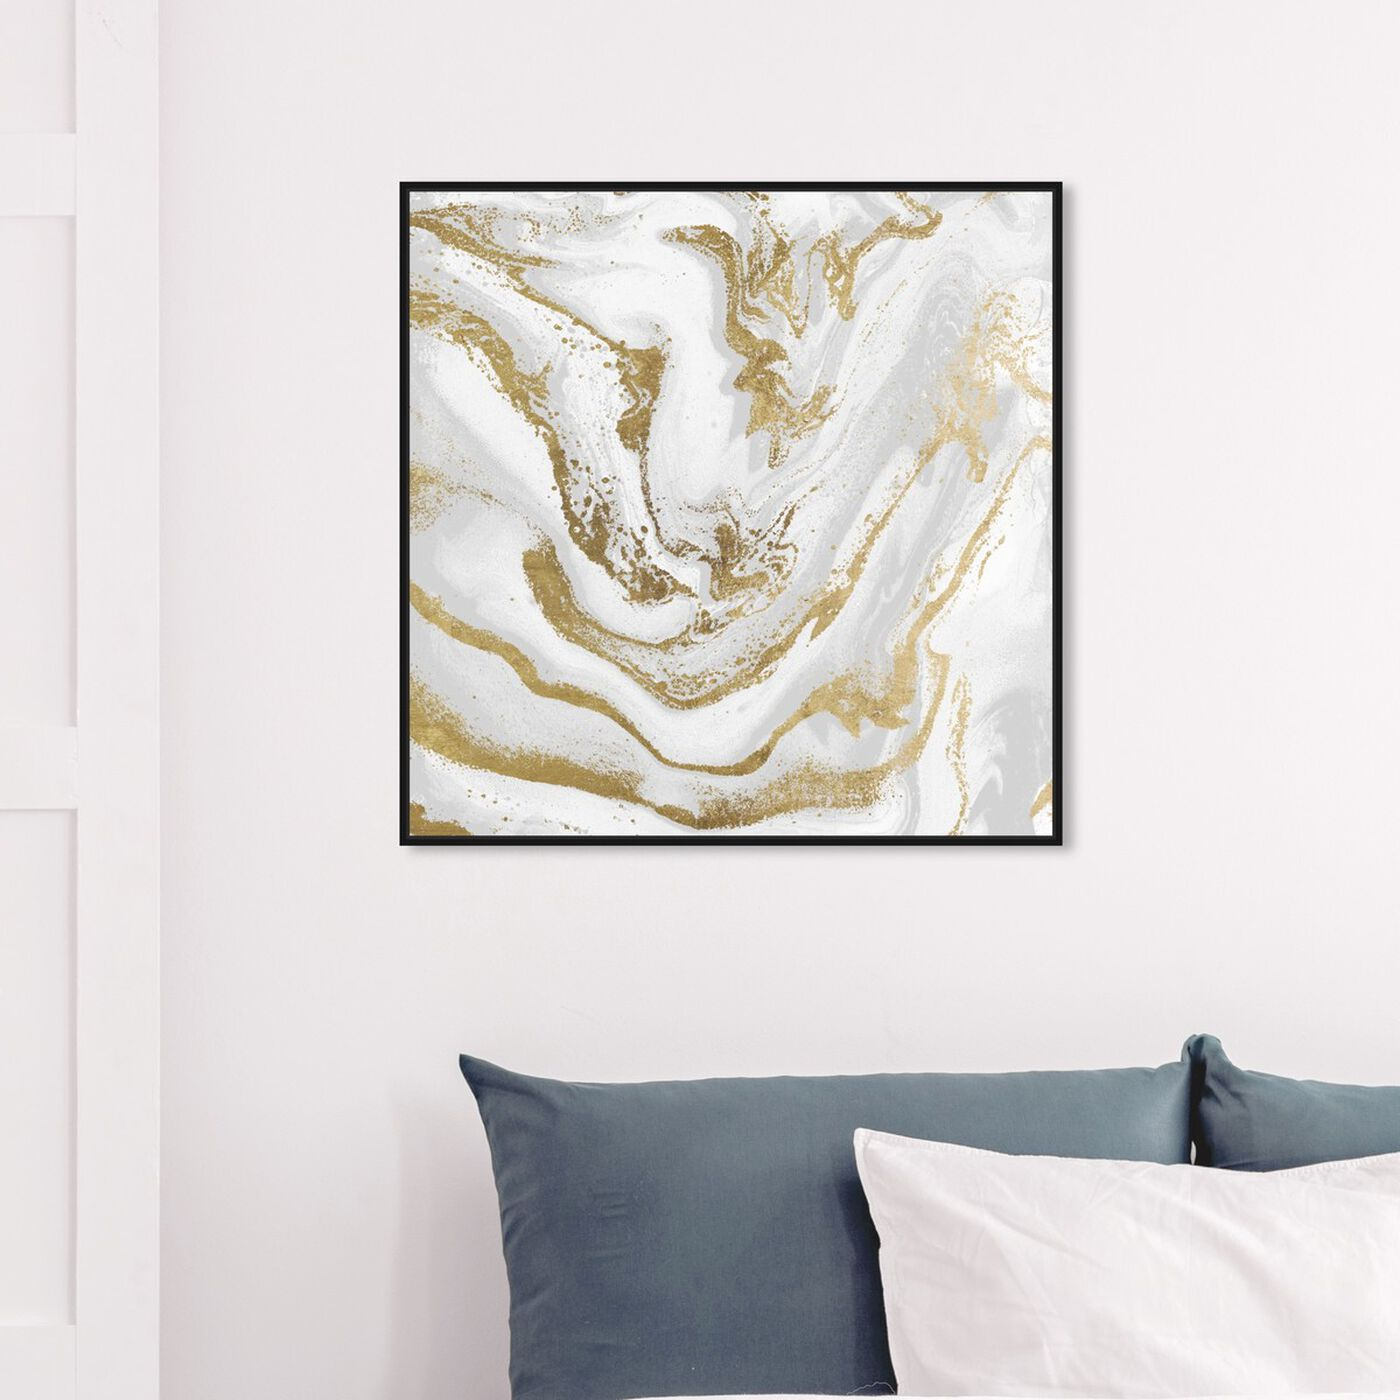 Hanging view of Marbellized Beauty Day featuring abstract and crystals art.